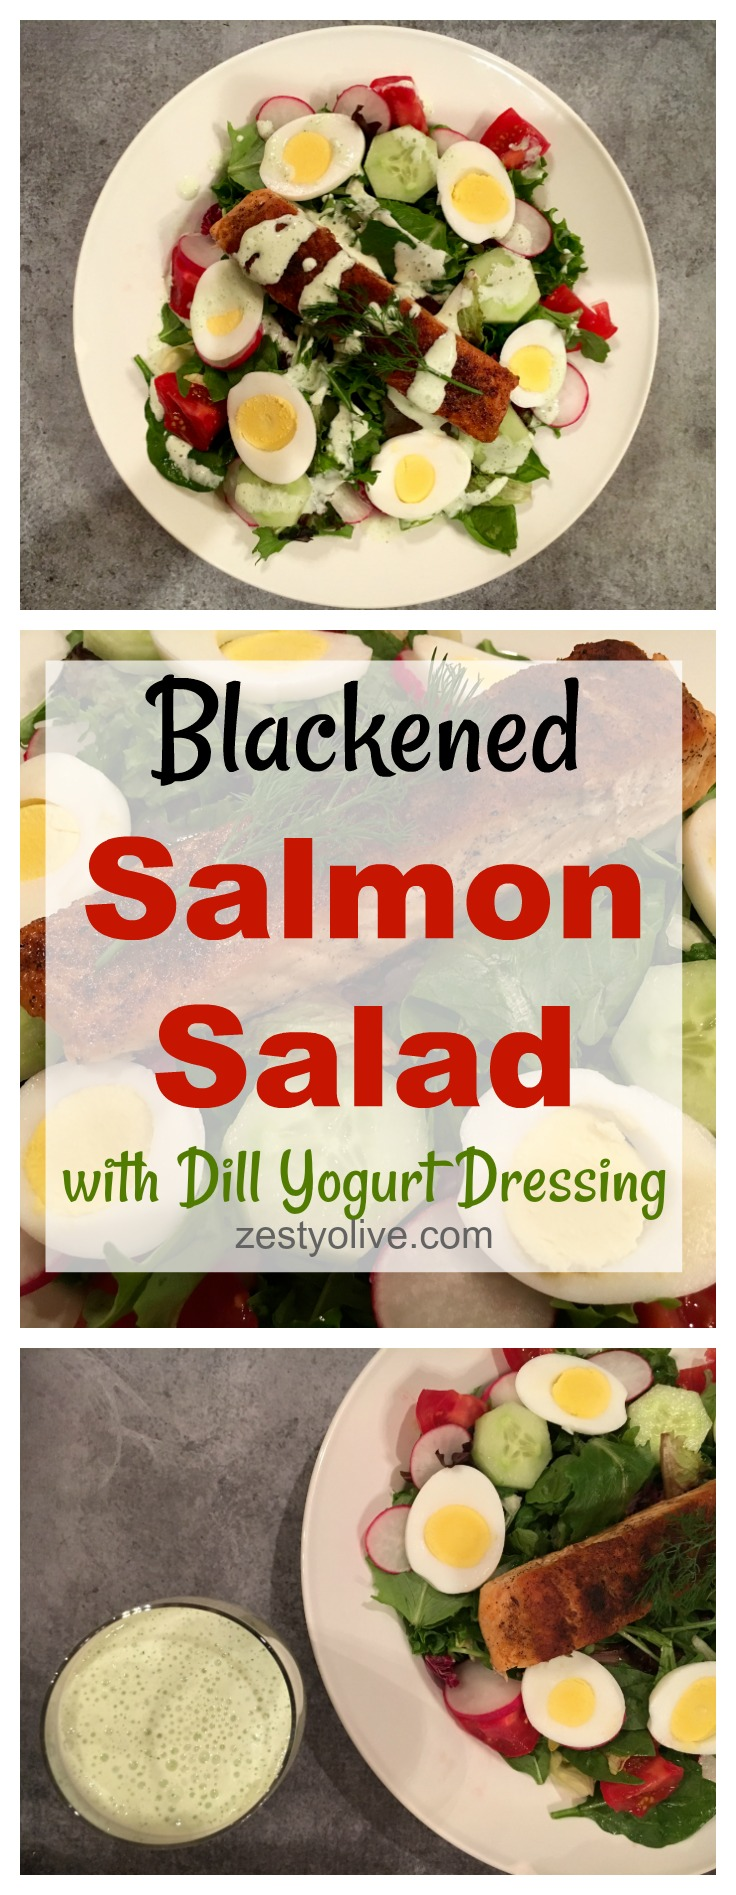 Blackened Salmon Salad with Dill Yogurt Dressing